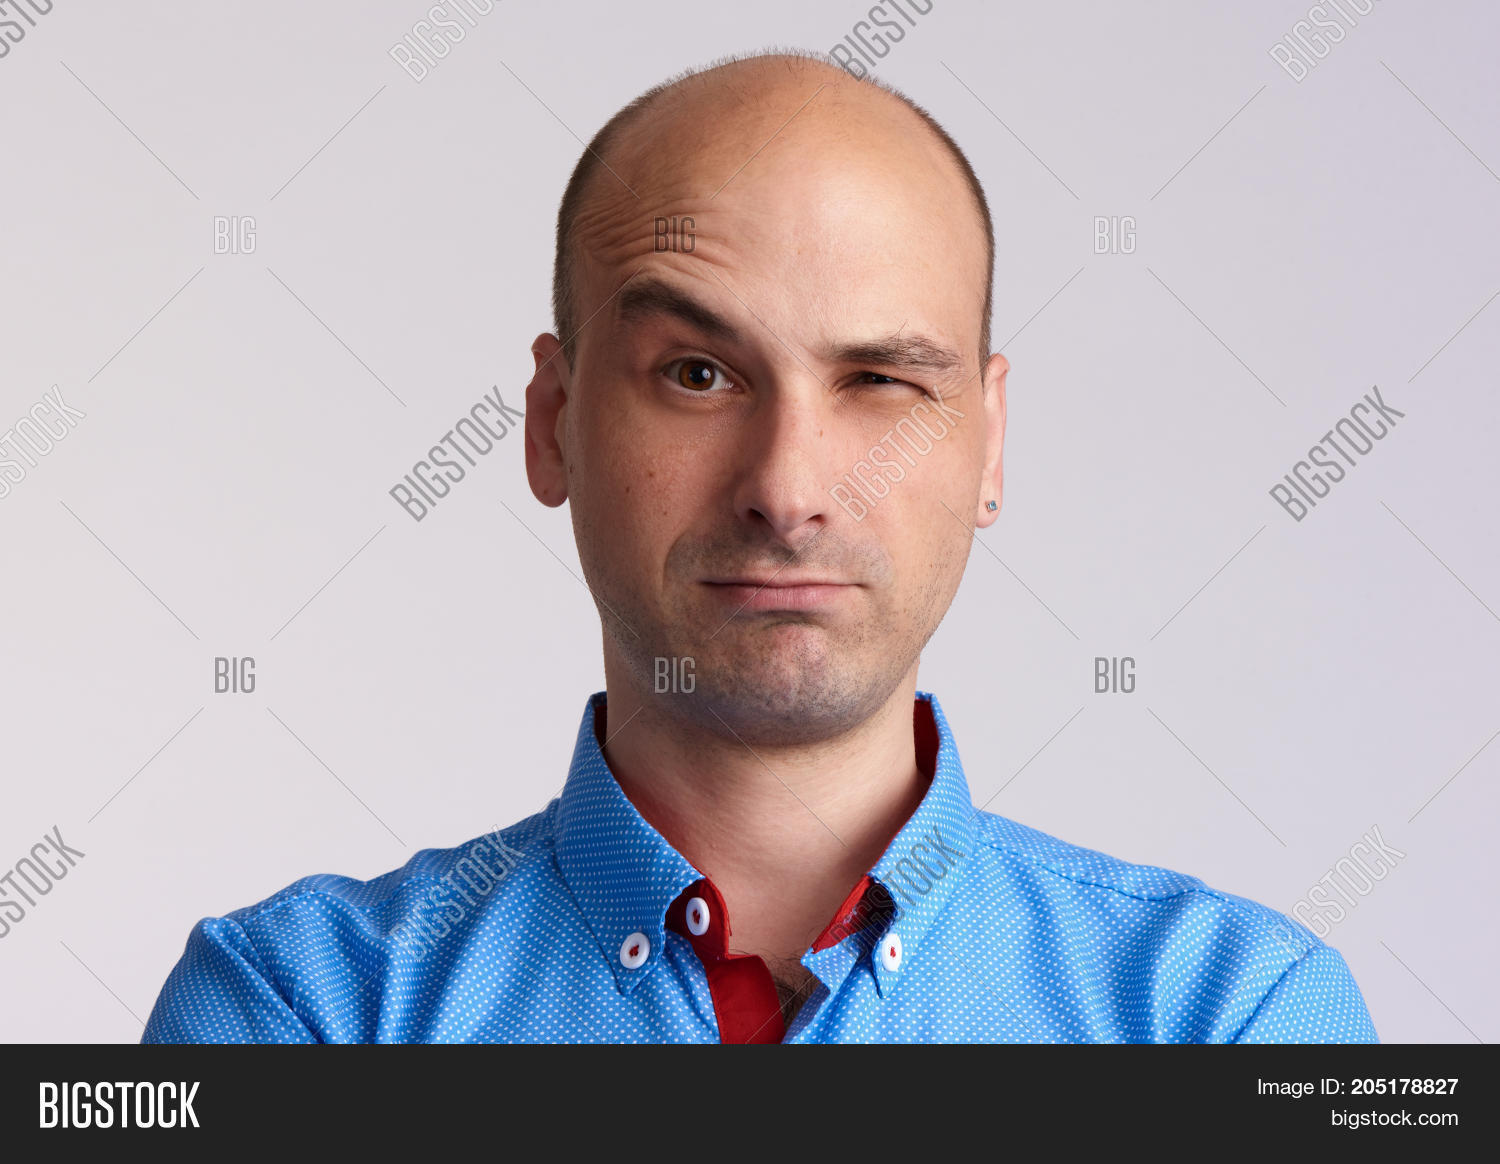 Man Face Raised Image Photo Free Trial Bigstock